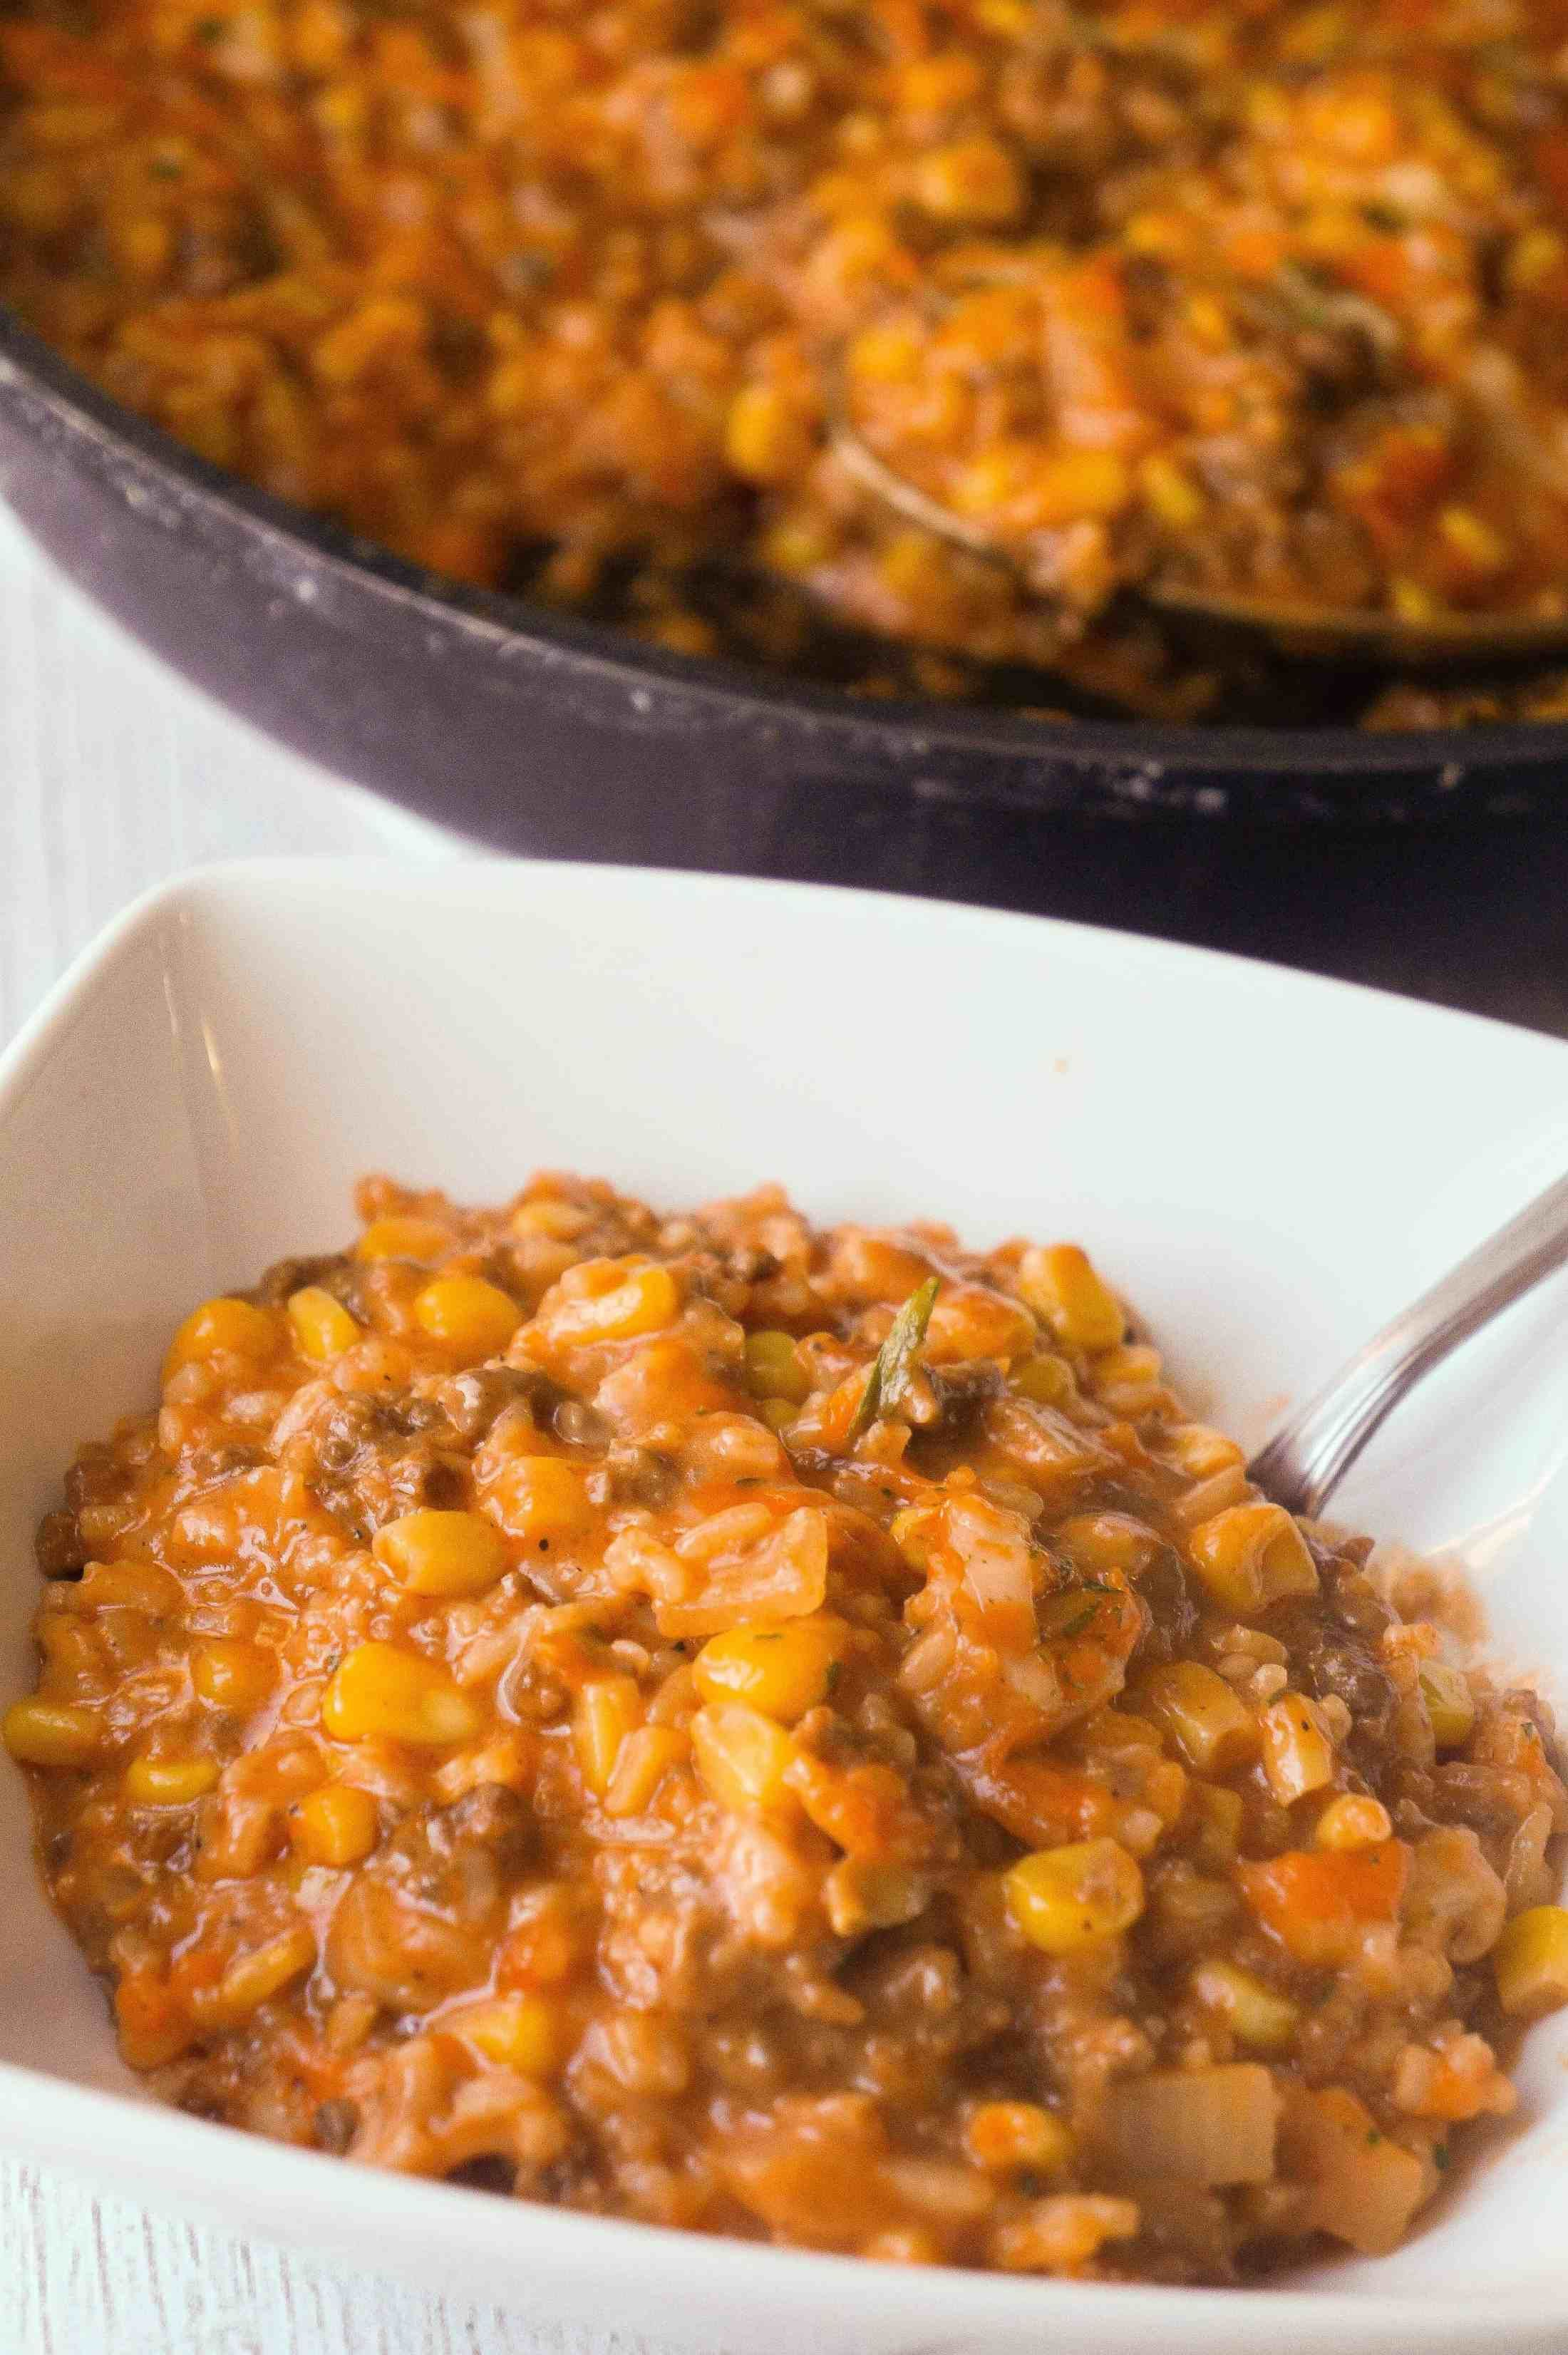 Cheesy Tomato Ground Beef And Rice Is An Easy Stove Top Dinner Recipe Packed With Flavour This Best Ground Beef Recipes Ground Beef Recipes Top Dinner Recipes